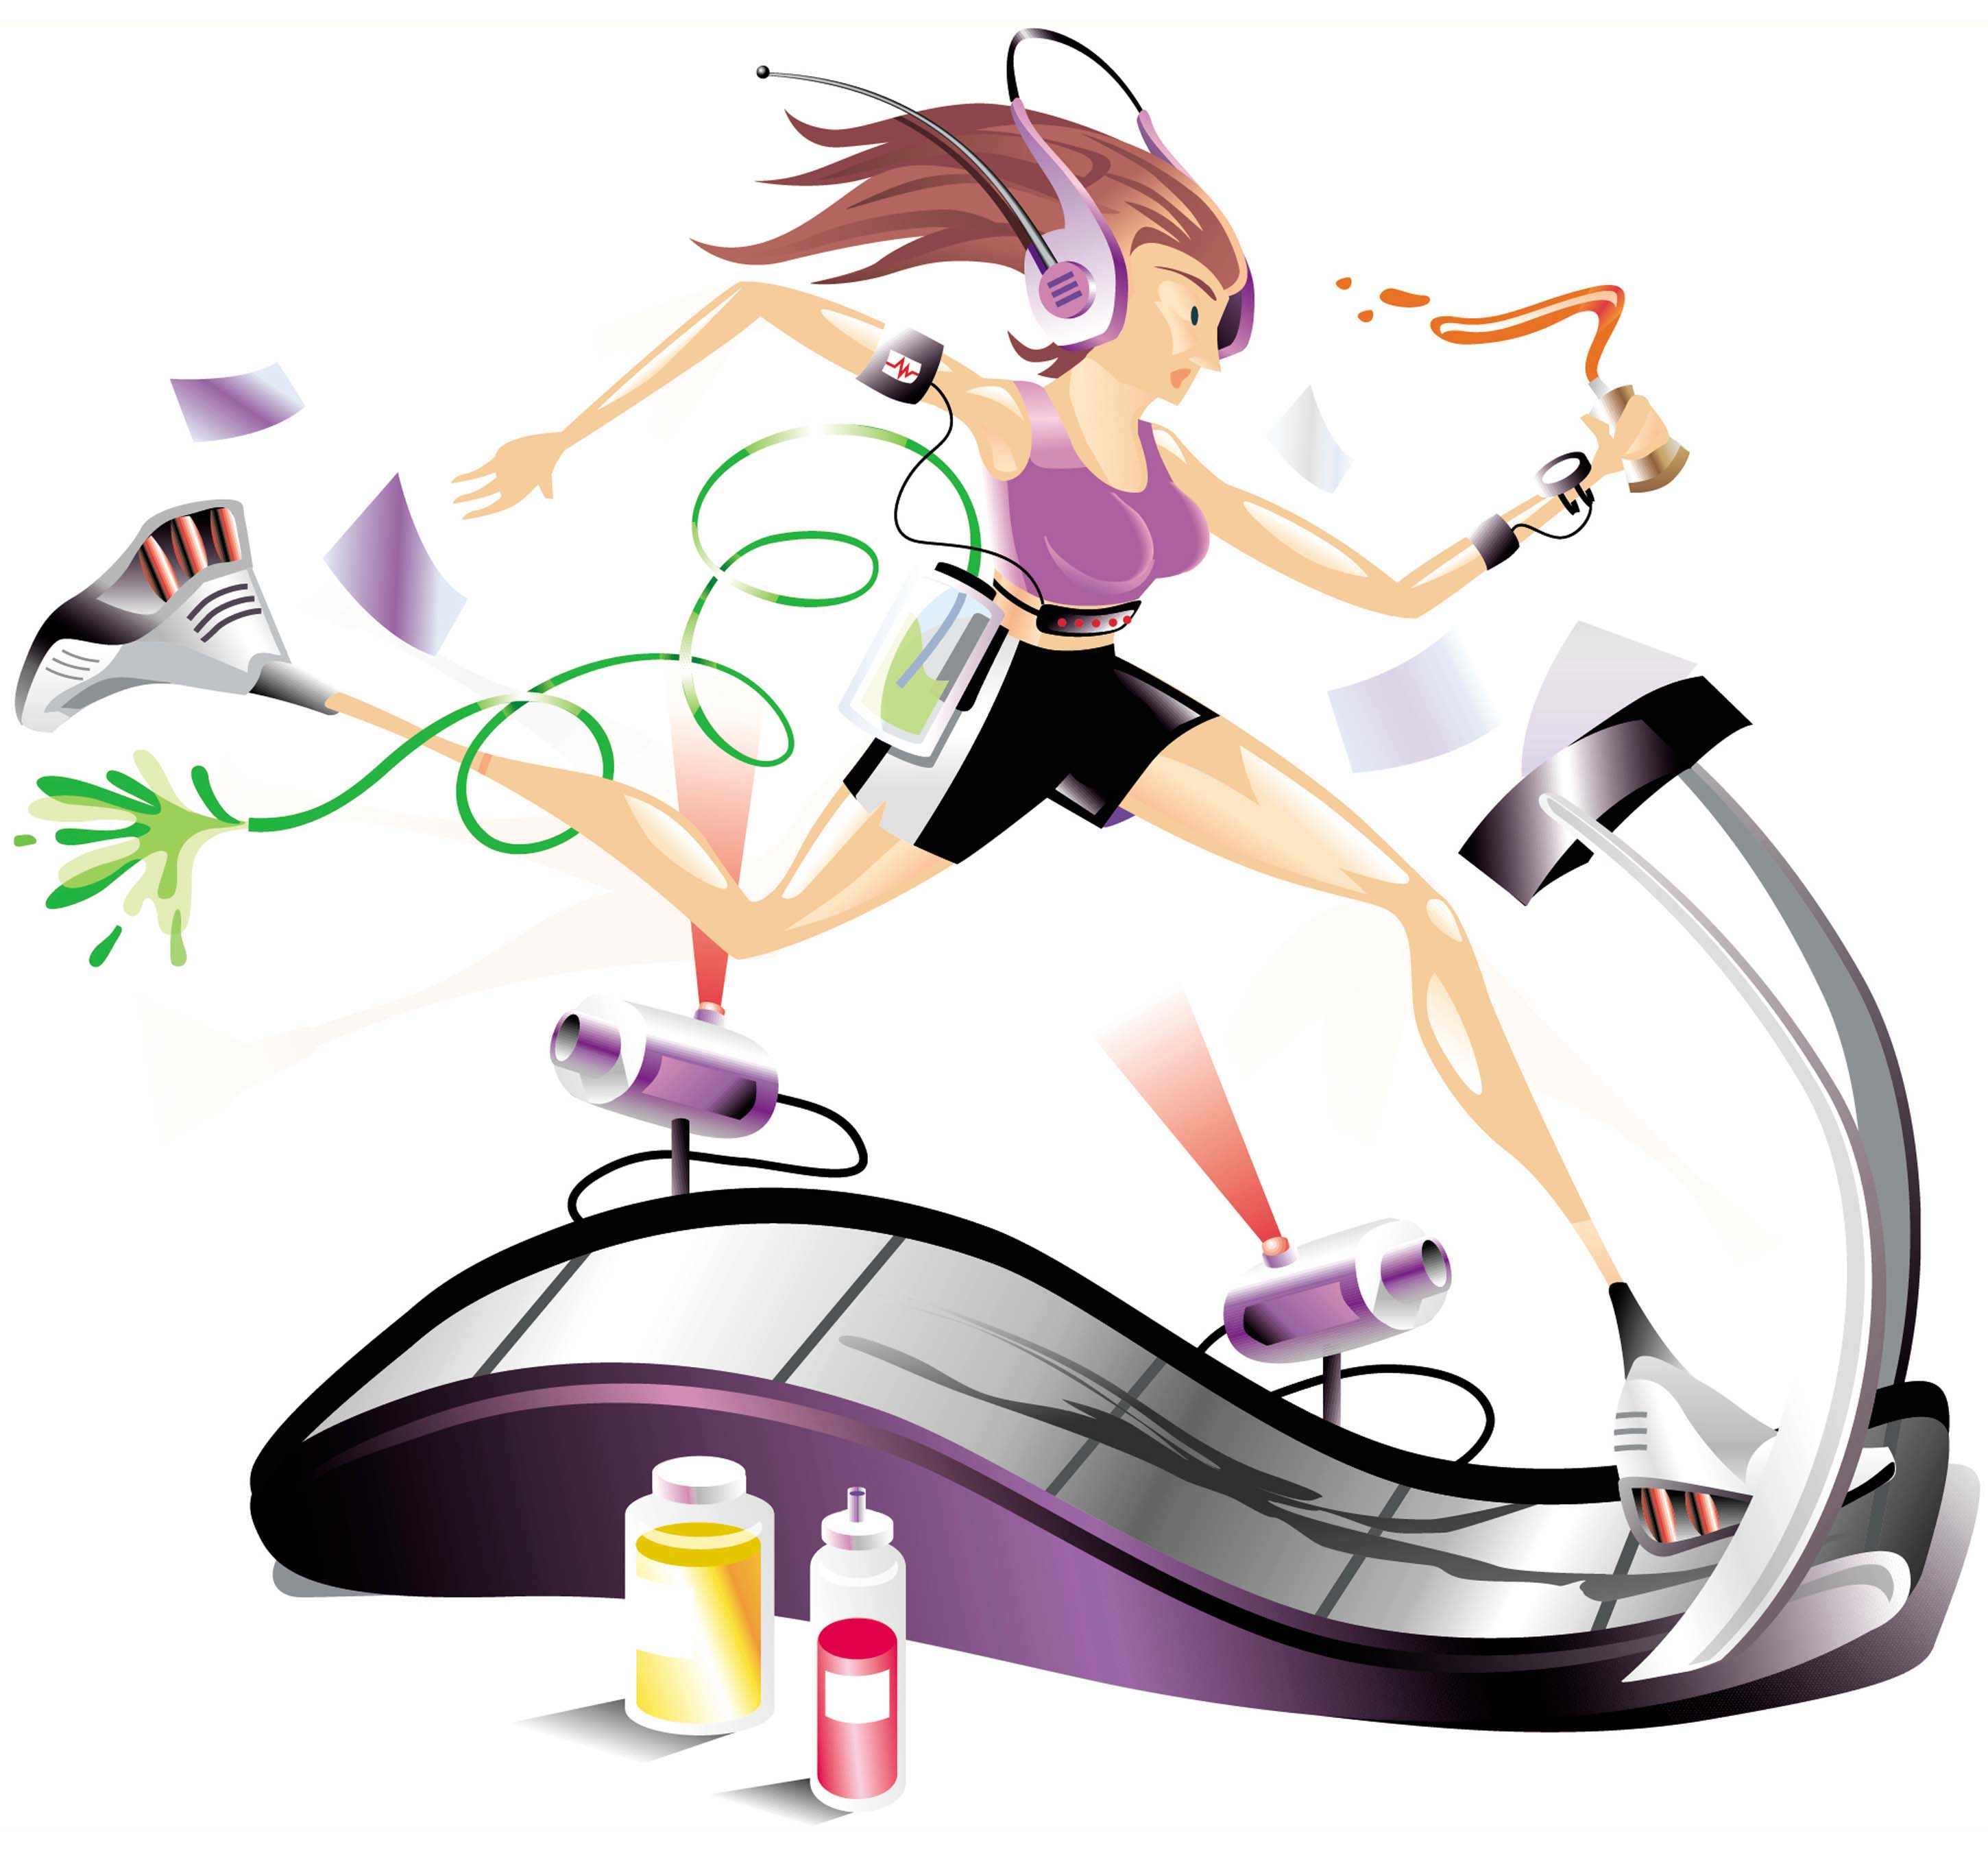 treadmill exercise calorie burn